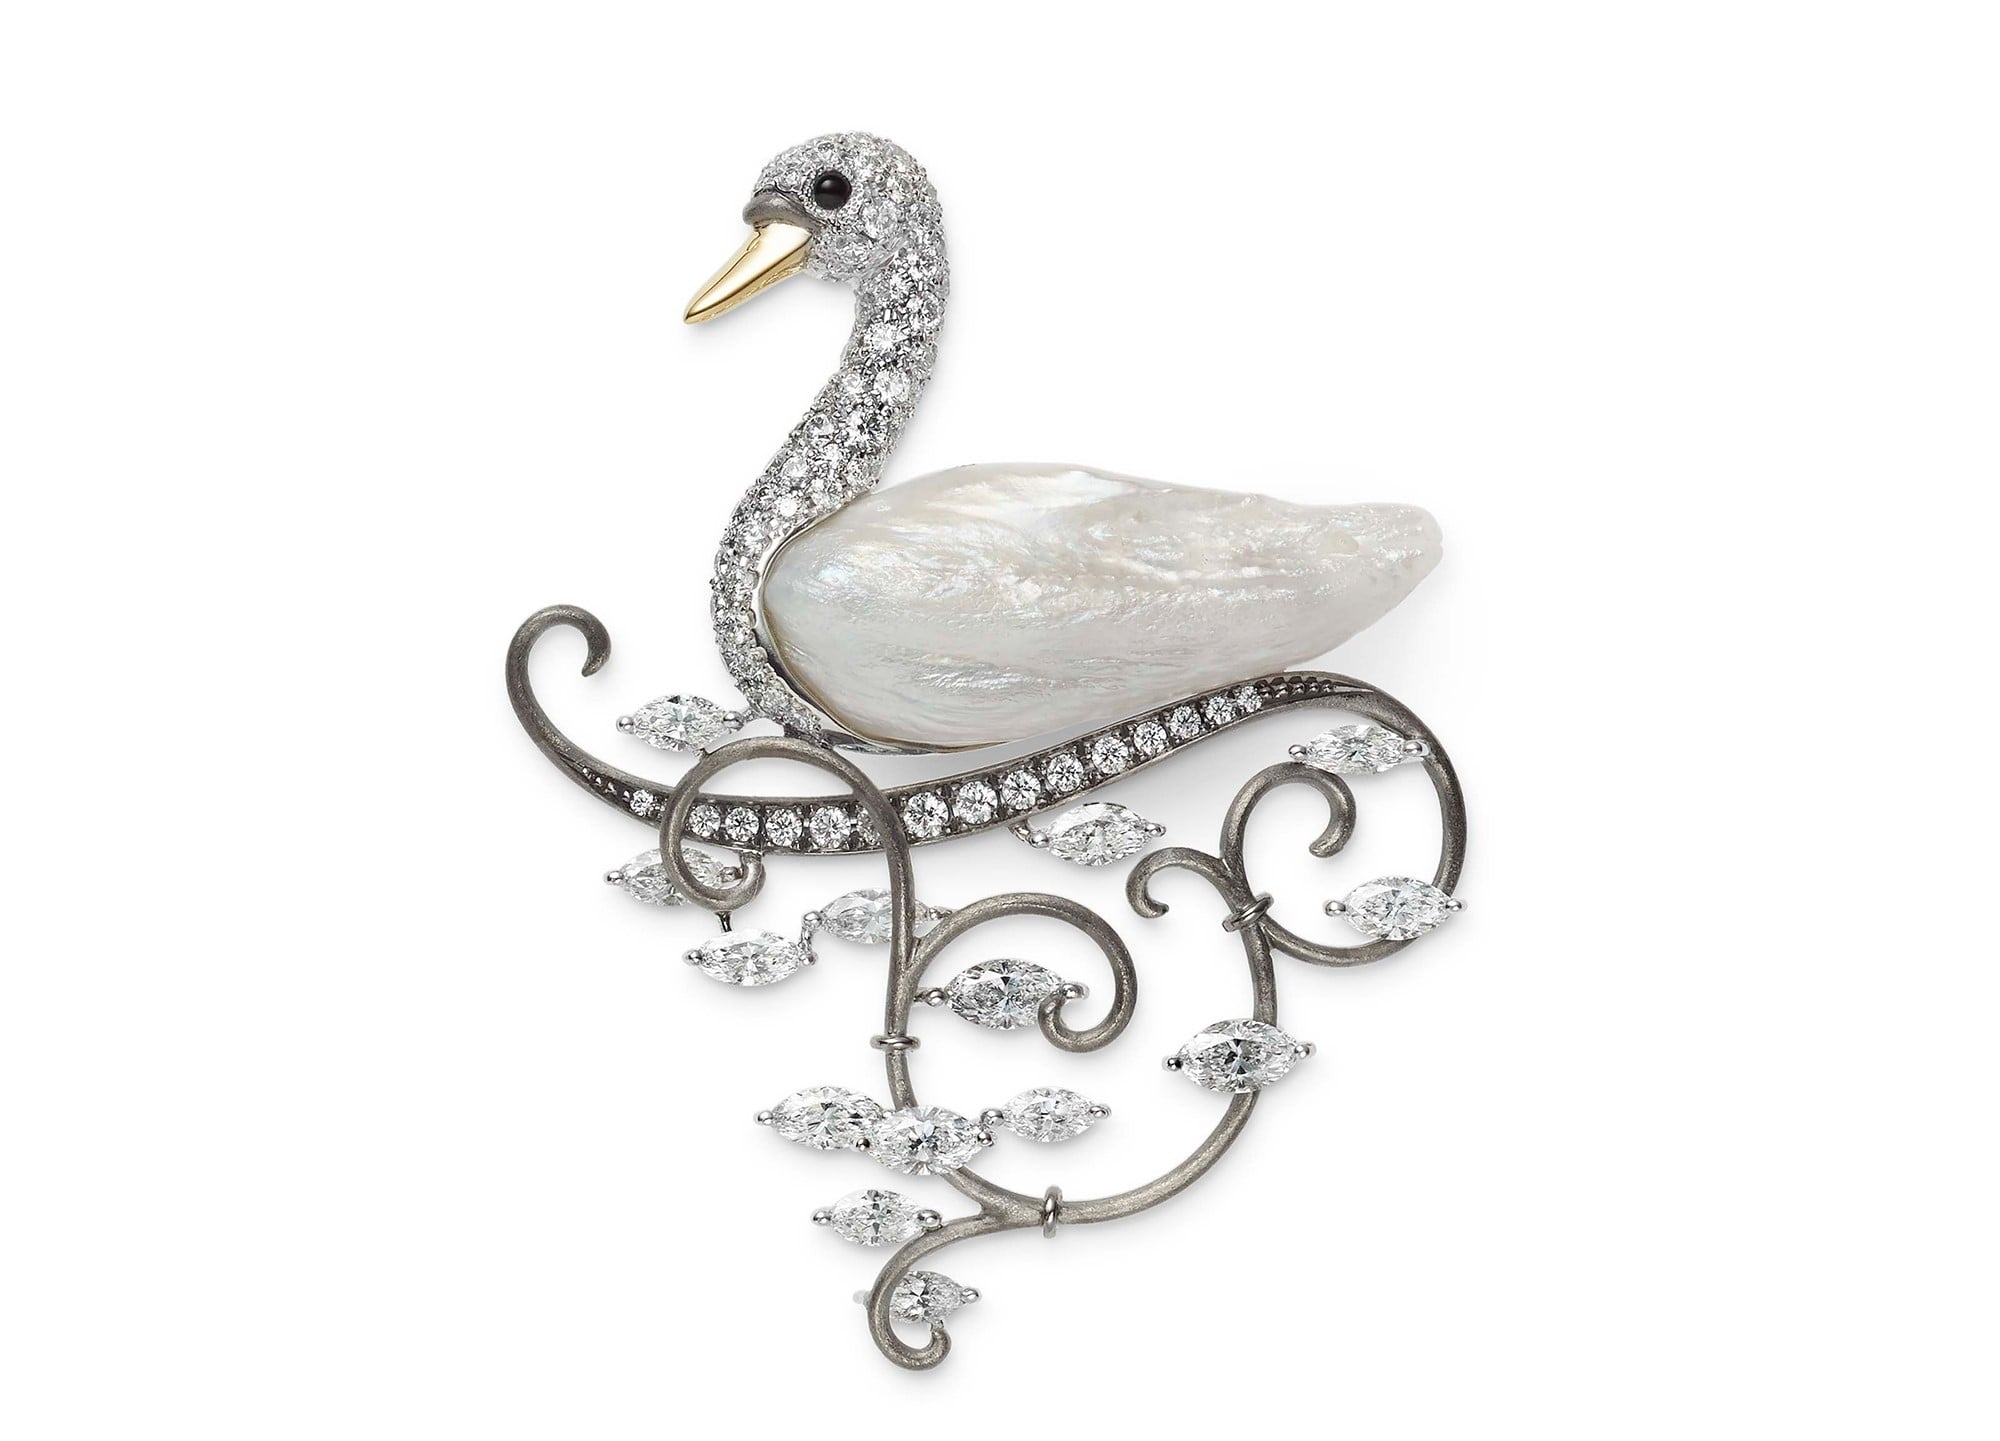 "A swan brooch using natural freshwater pearls called ""Feather Pearls"". The diamond represents the sunlight reflection from the lake water surface."